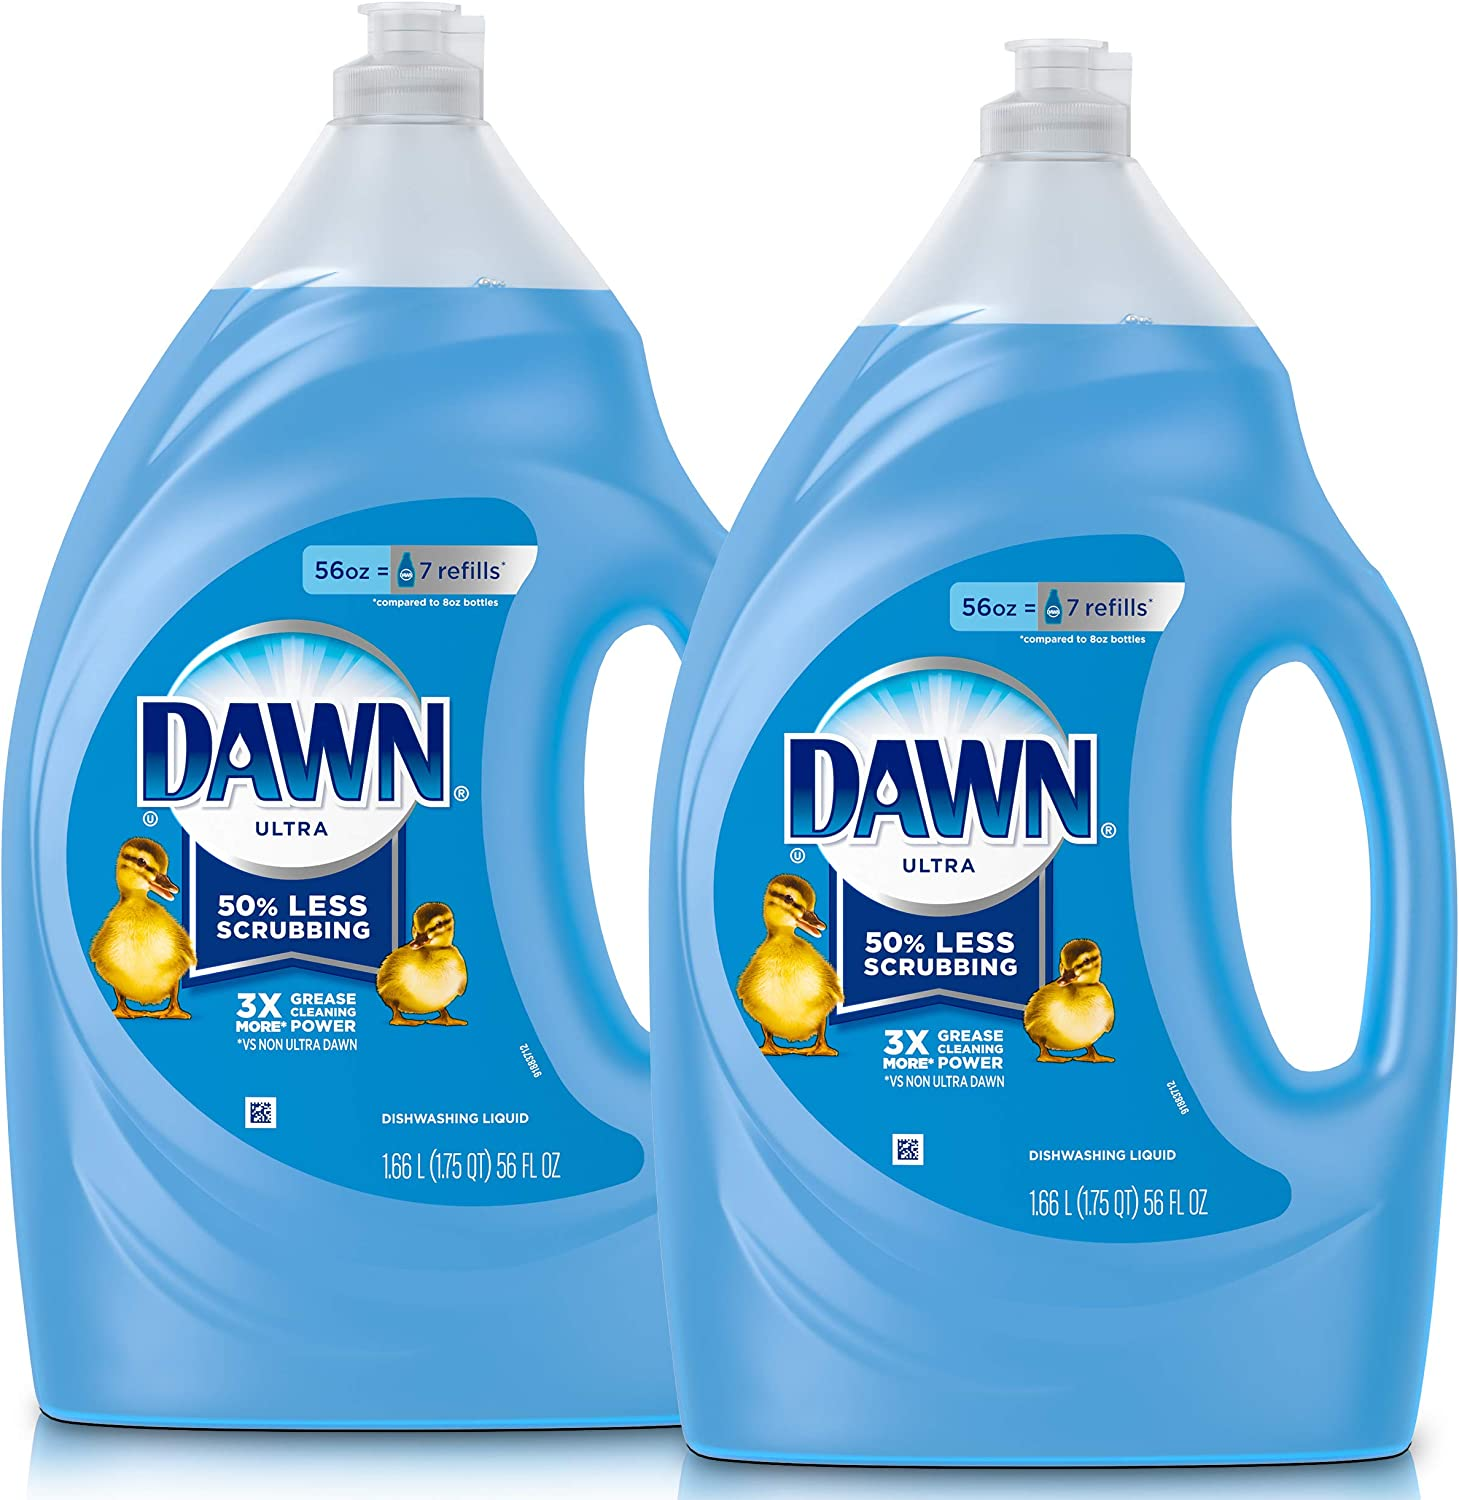 Dawn Ultra Dishwashing Liquid Dish Soap, Original Scent, Refill Size, 2 Count, 56 Oz.(Packaging May Vary): Health & Personal Care